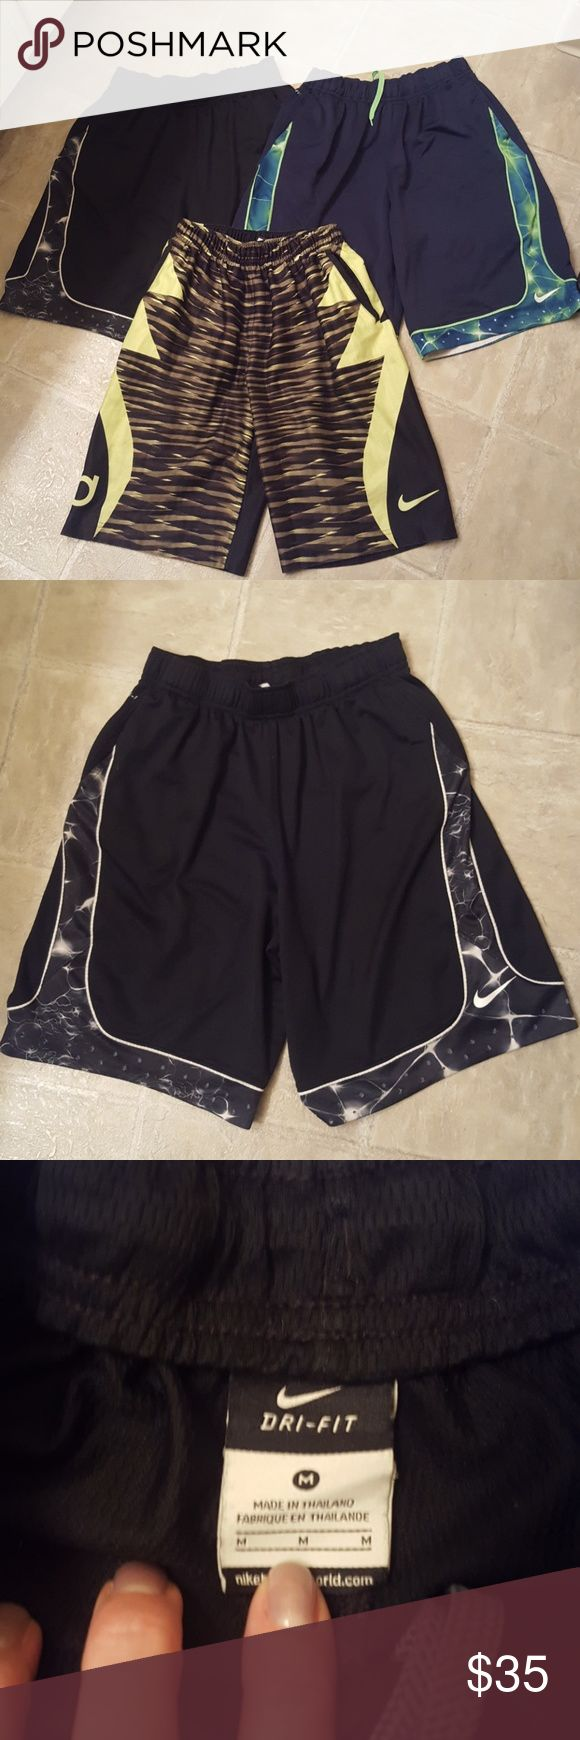 3 Pair Nike Dri-Fit Shorts 3 pairs of Nike shorts. Used but in good condition. Black pair is near flawless, navy pair has a few snags on trim color as in photos and black/neon green shorts have a few snags on the butt from my son sitting on a concrete wall. Please zoom in on photos so i know youll be happy with your purchase! Still plenty of life left in all of these! Nike Bottoms Shorts